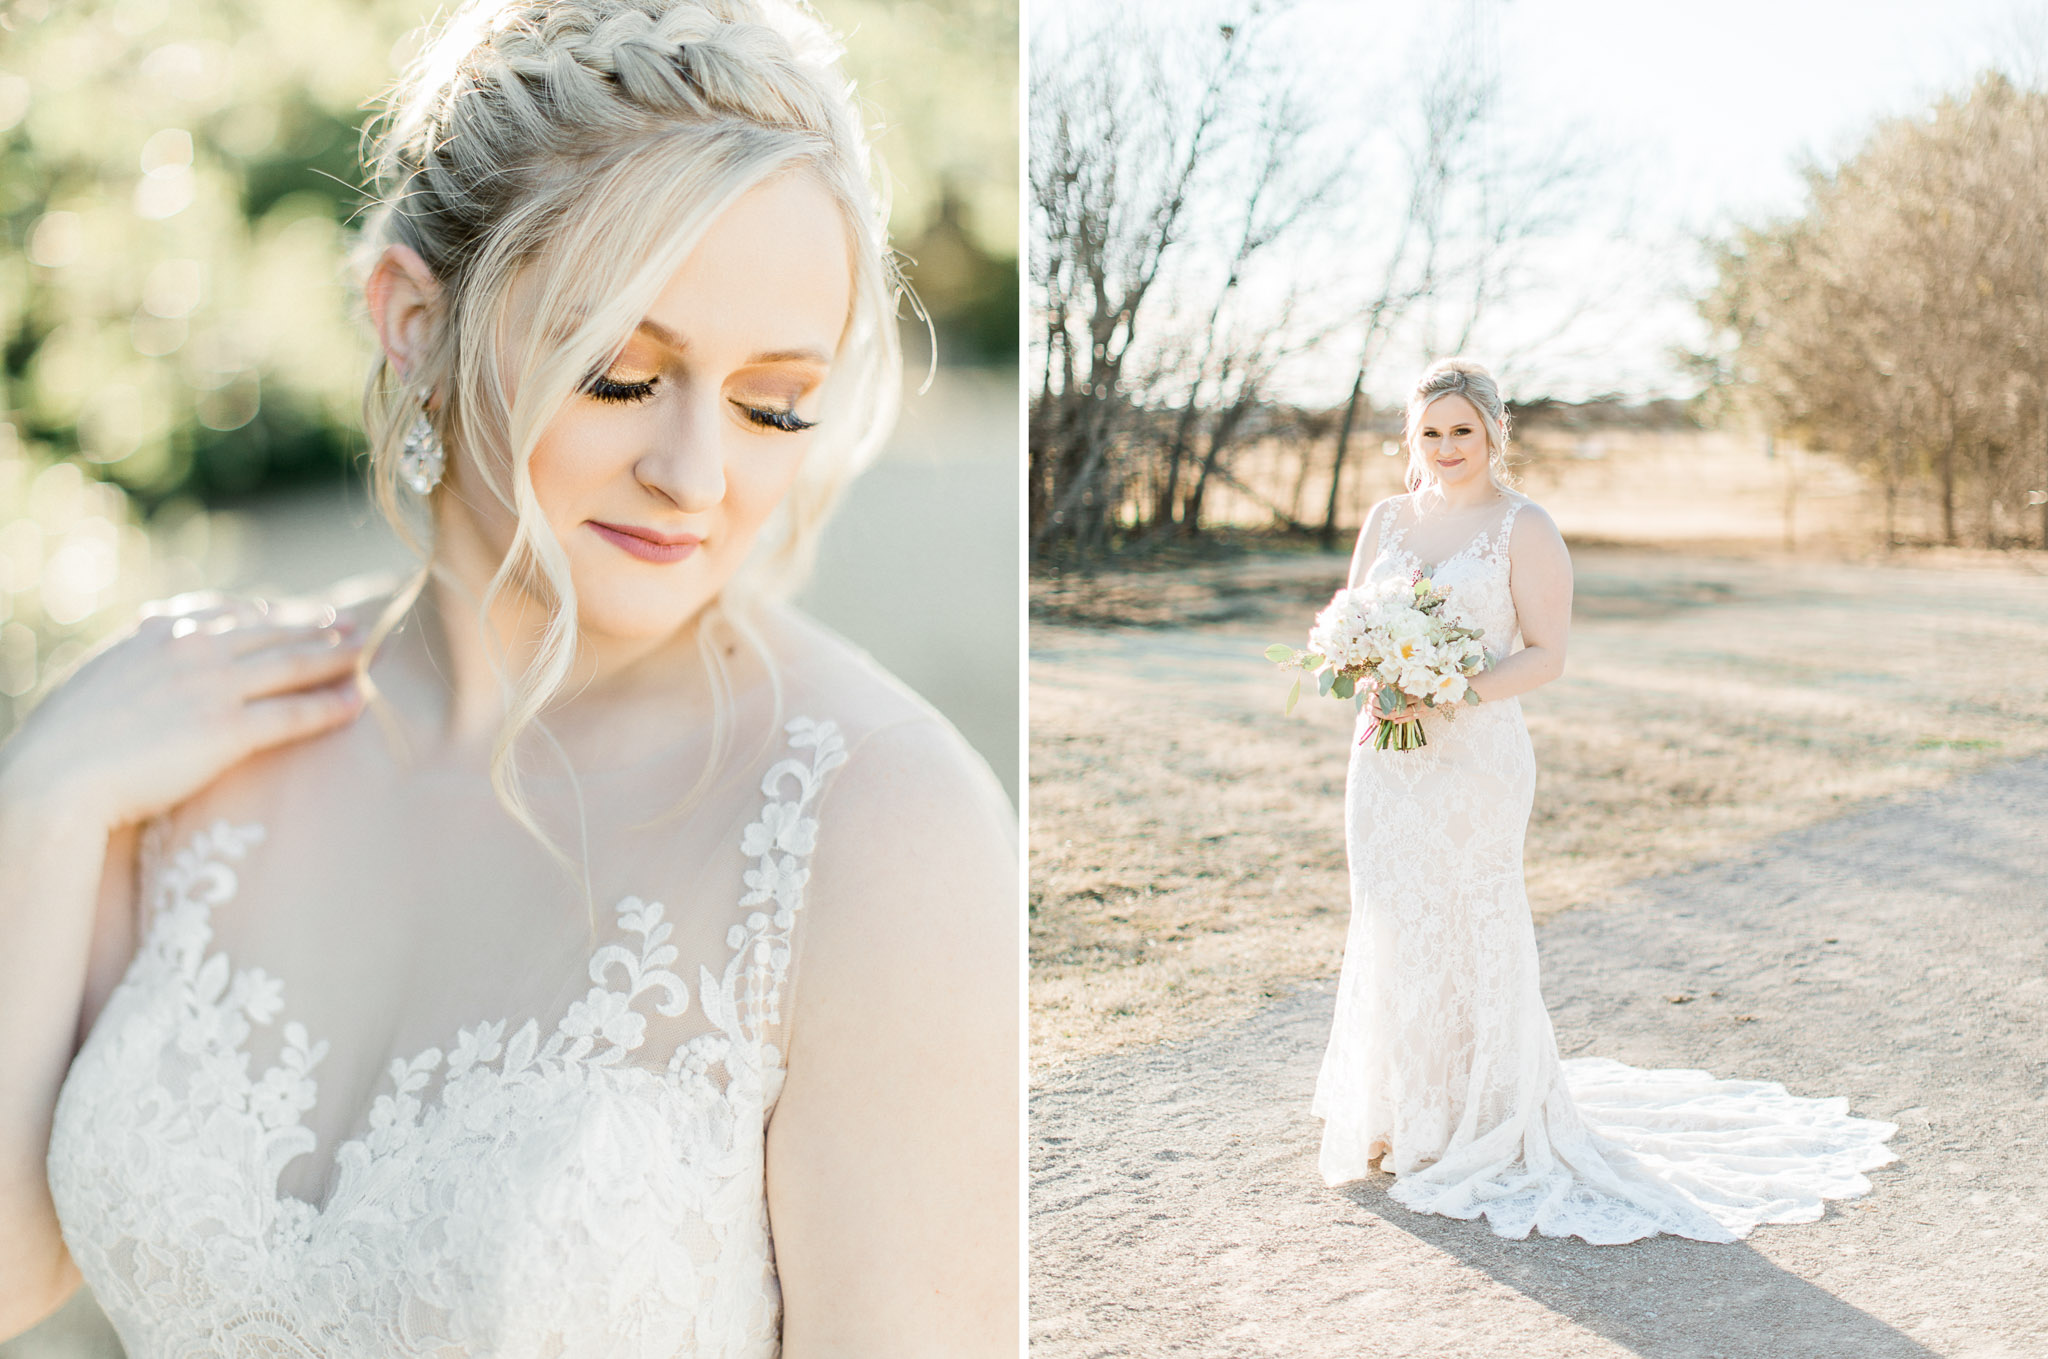 North Texas Bridal Wedding Photos - Fine Art Photography